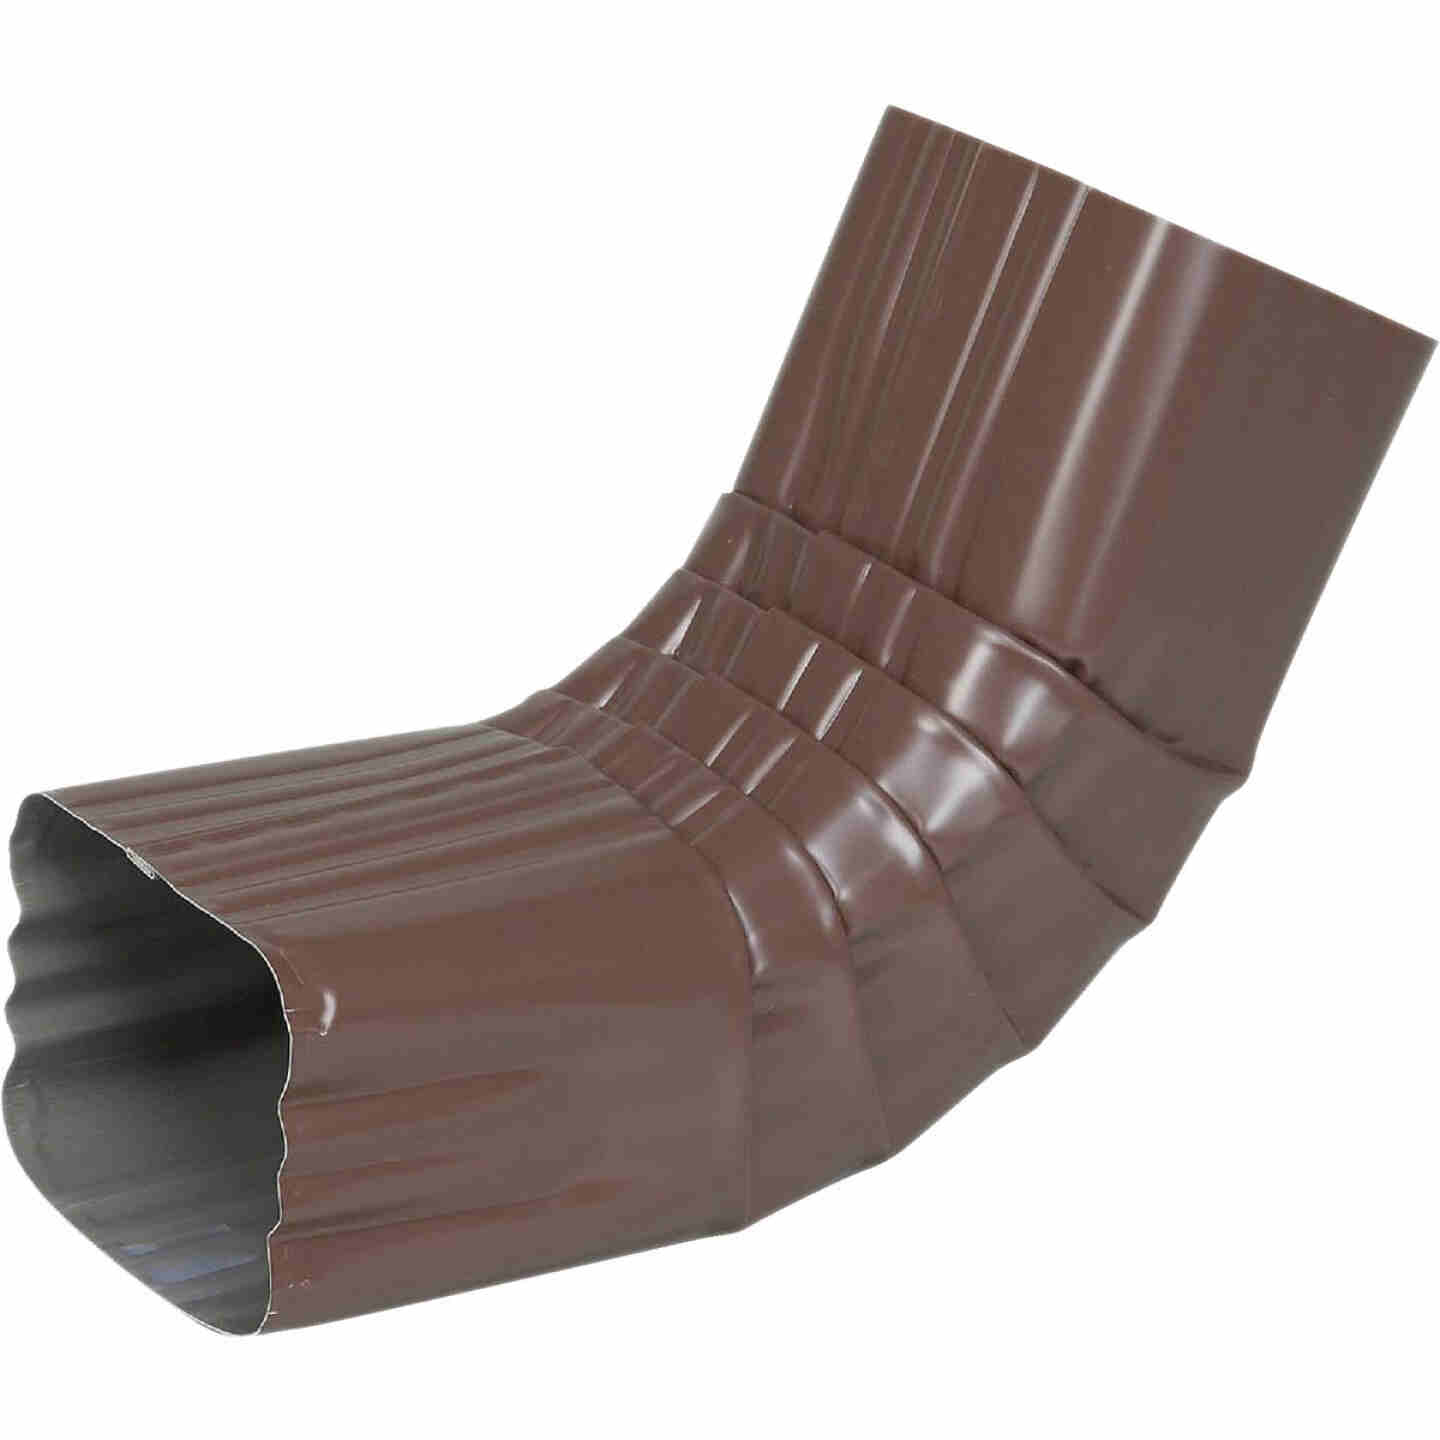 Spectra Metals 3 x 4 In. Aluminum Brown Front Downspout Elbow Image 1